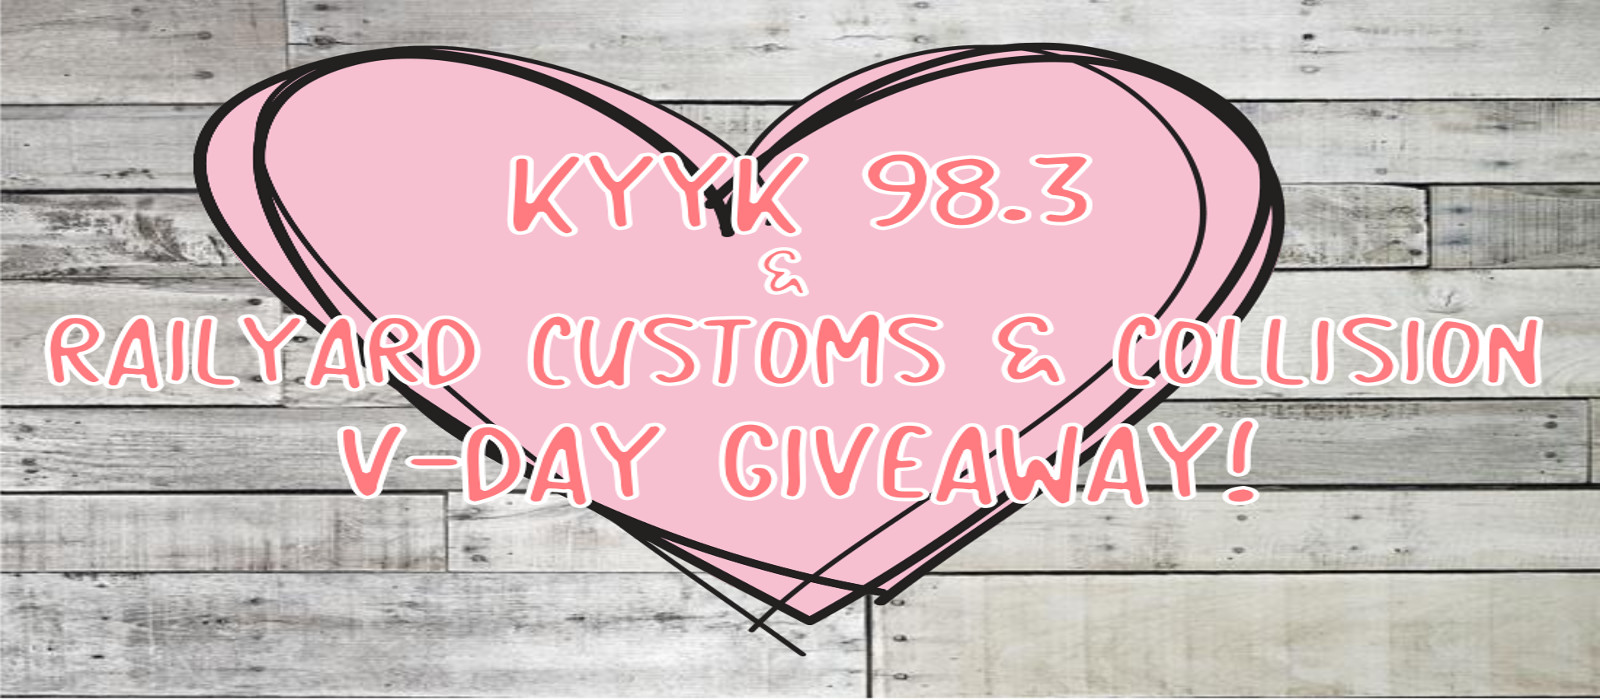 KYYK 98.3 & Railyard Customs & Collision V-Day Giveaway!